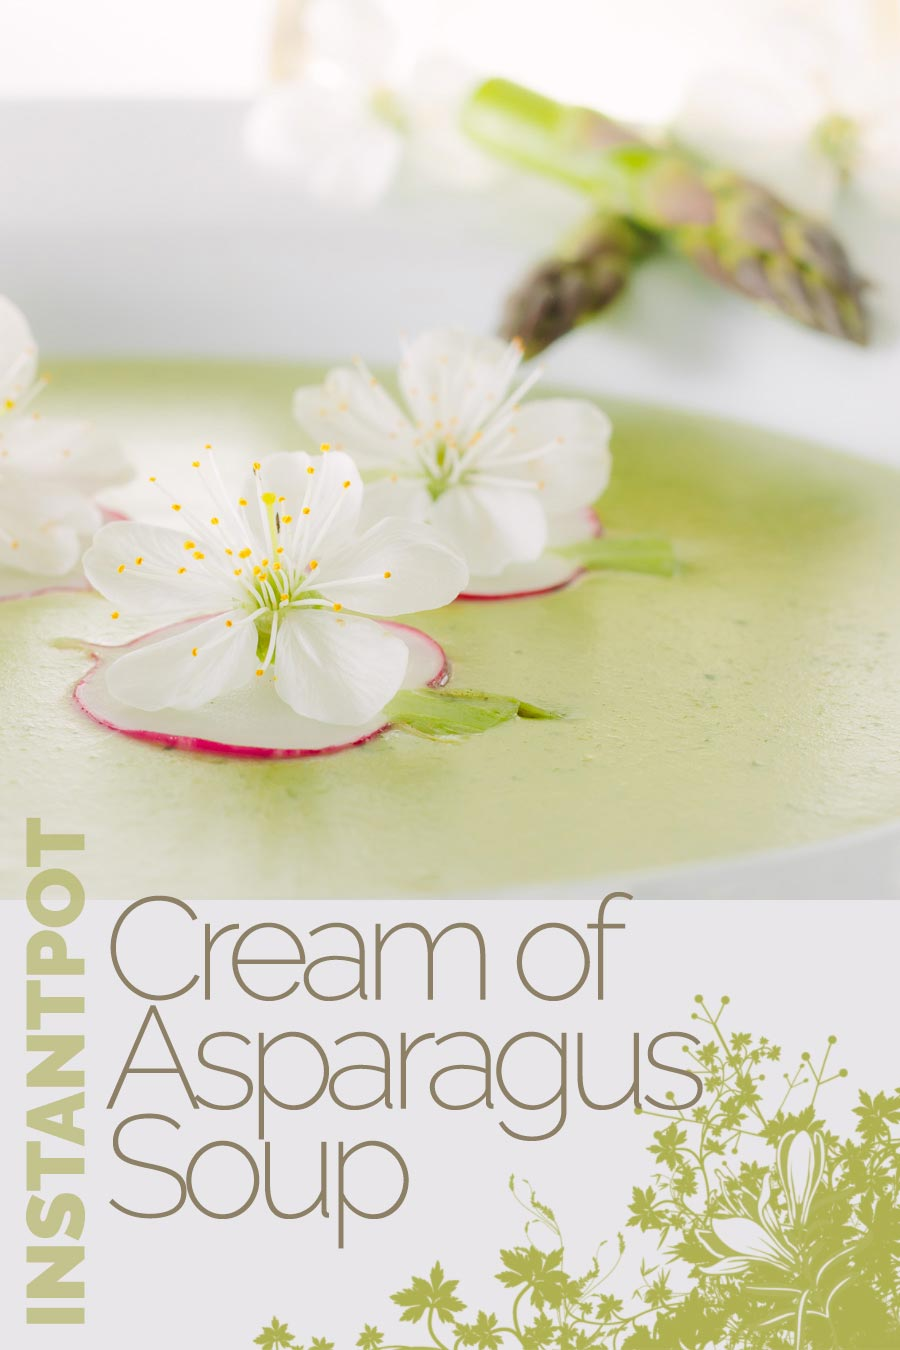 Asparagus Soup may seem a little indulgent but this cream of asparagus soup is a beautifully spring like dish with a surprising and tasty garnish. #soup #asparagus #springrecipe #asparagussoup #edibleflowers #recipeideas #recipeoftheday #recipes